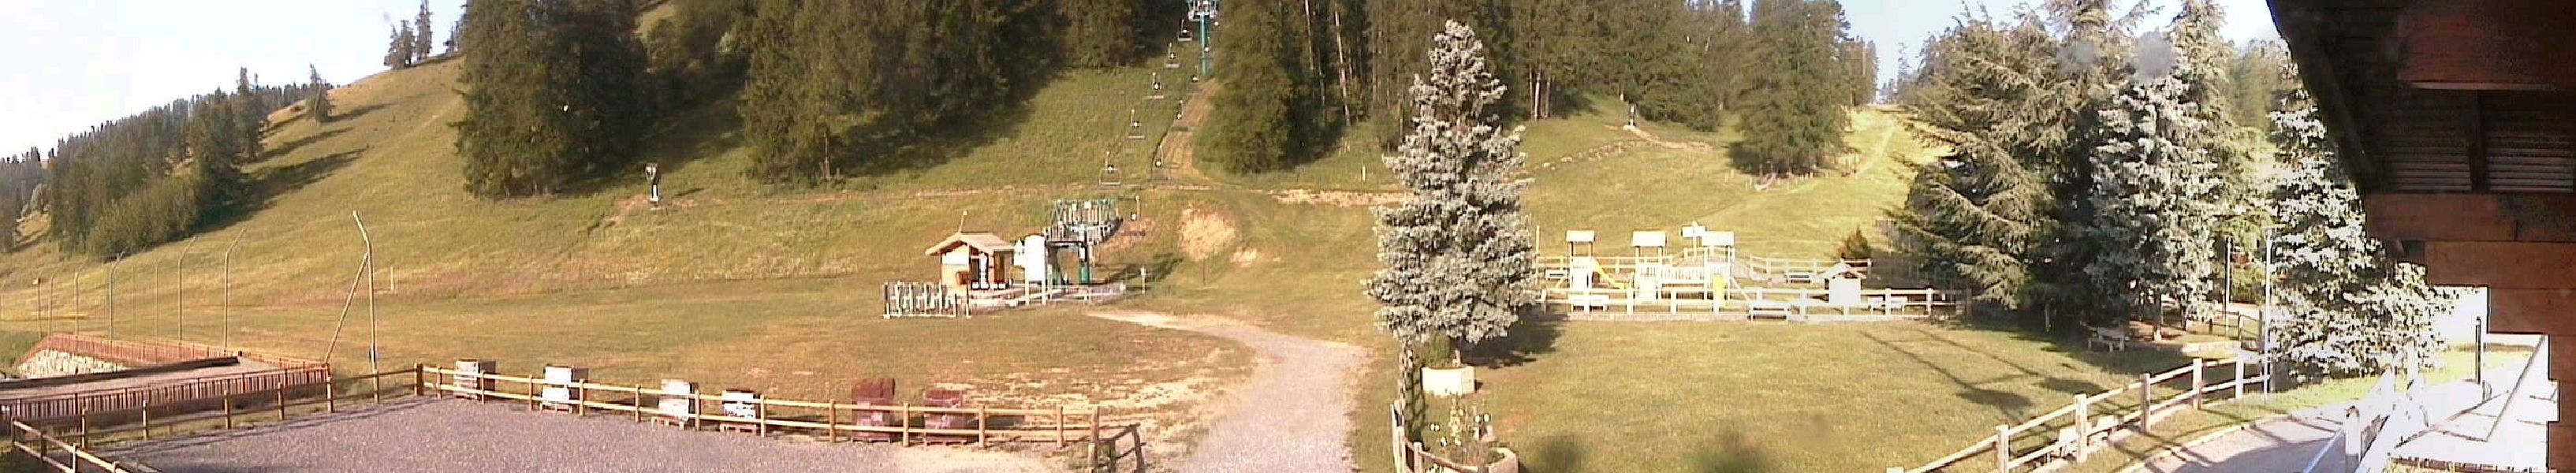 Webcam panoramique de la Croix à Valberg